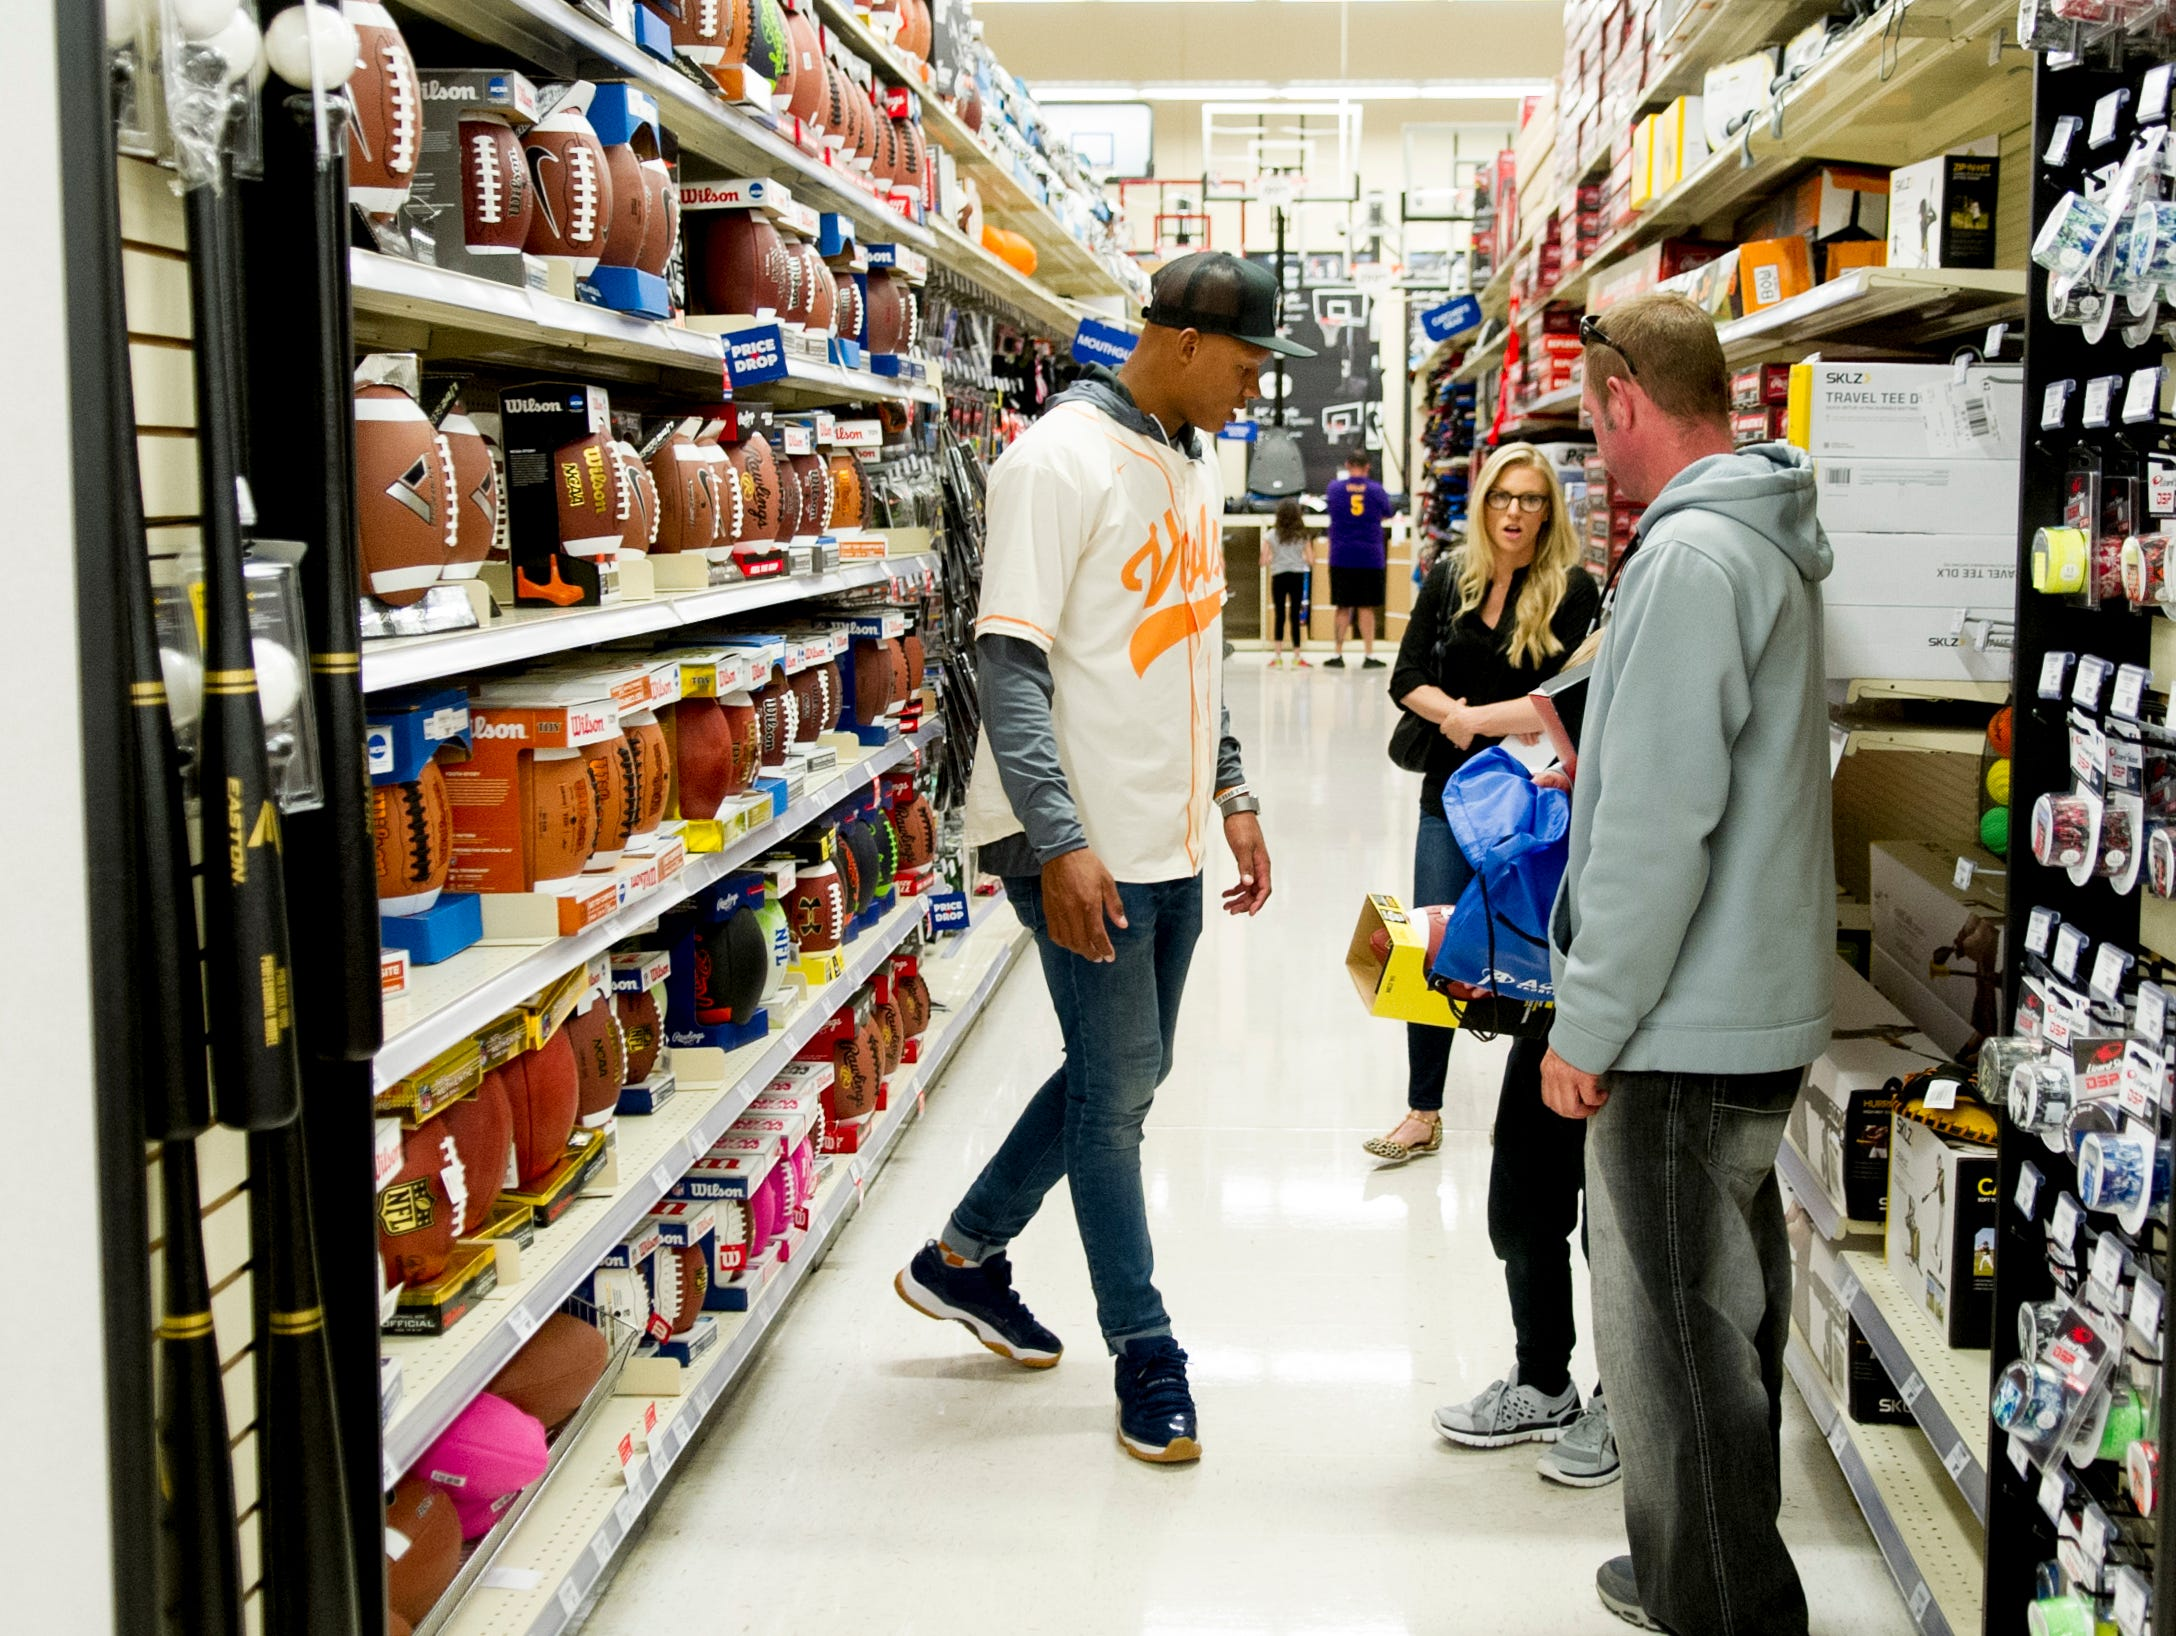 Former UT QB Joshua Dobbs shops with Matthew Scott, 8, of Sevierville, during a football sporting goods shopping spree at Academy Sports + Outdoors in Knoxville, Tennessee on Friday, March 31, 2017. Dobbs held a shopping spree for 11 area kids who are participating in his football camp.